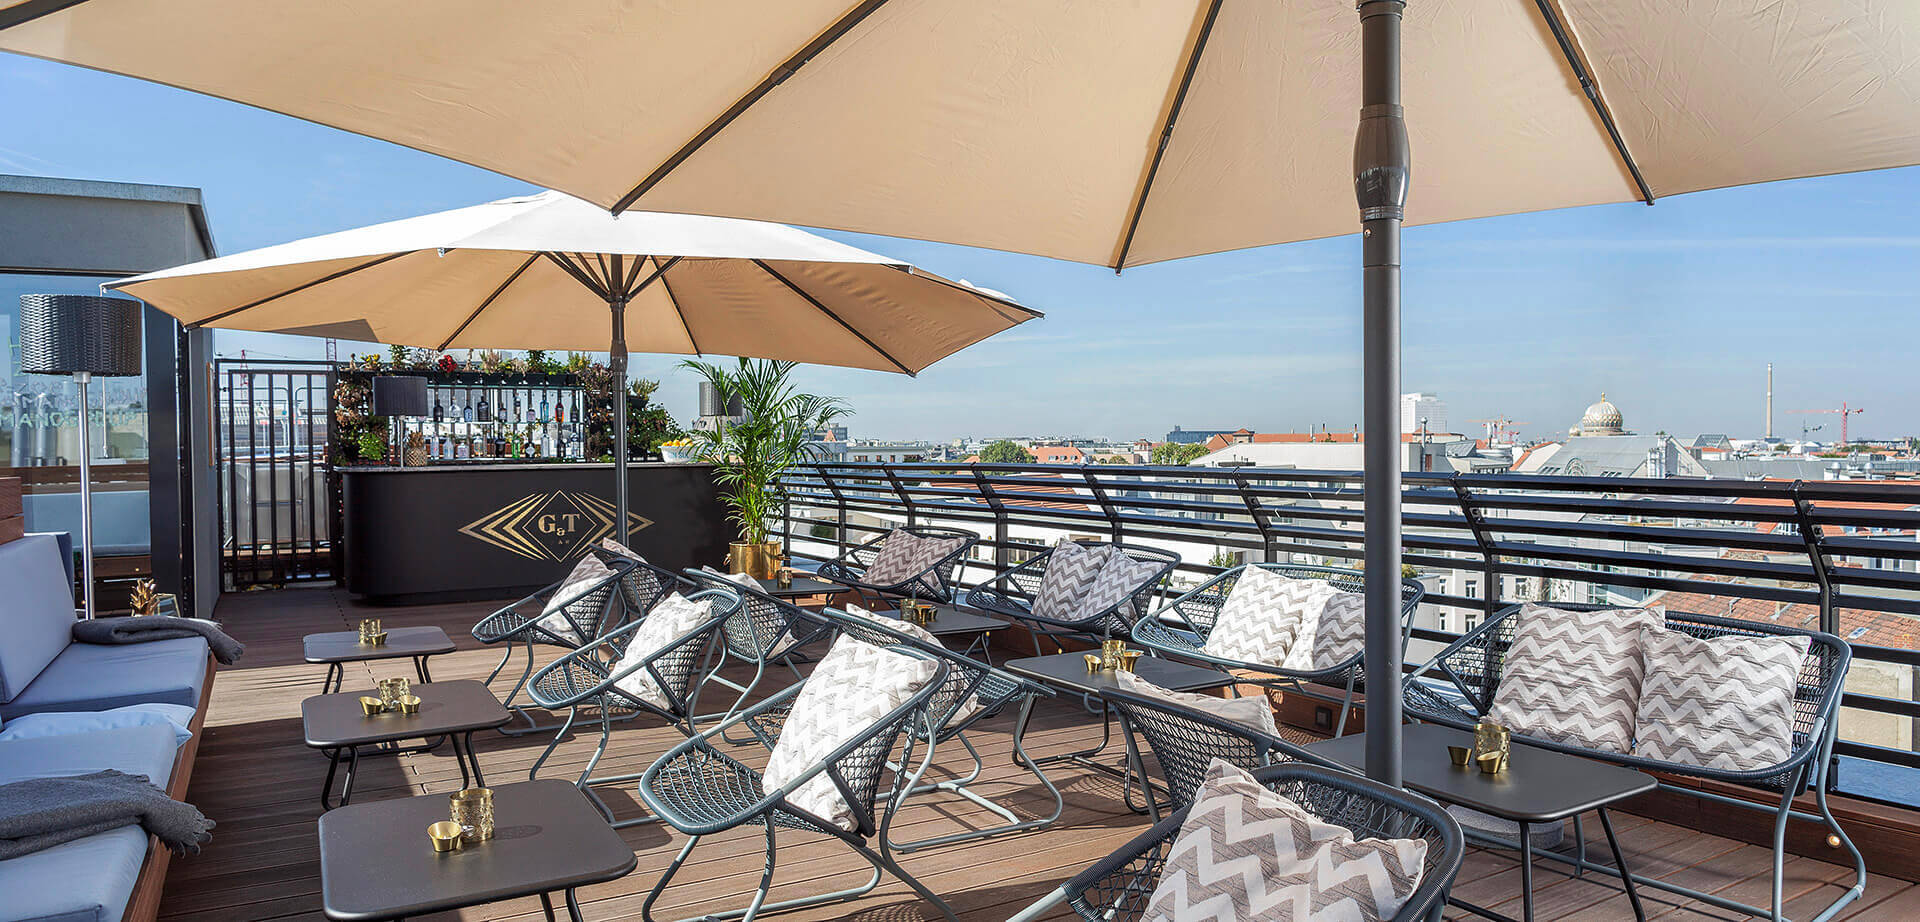 Yoga Dachterrasse Berlin Glint Rooftop Bars In Berlin Enjoy Your Drink With A View